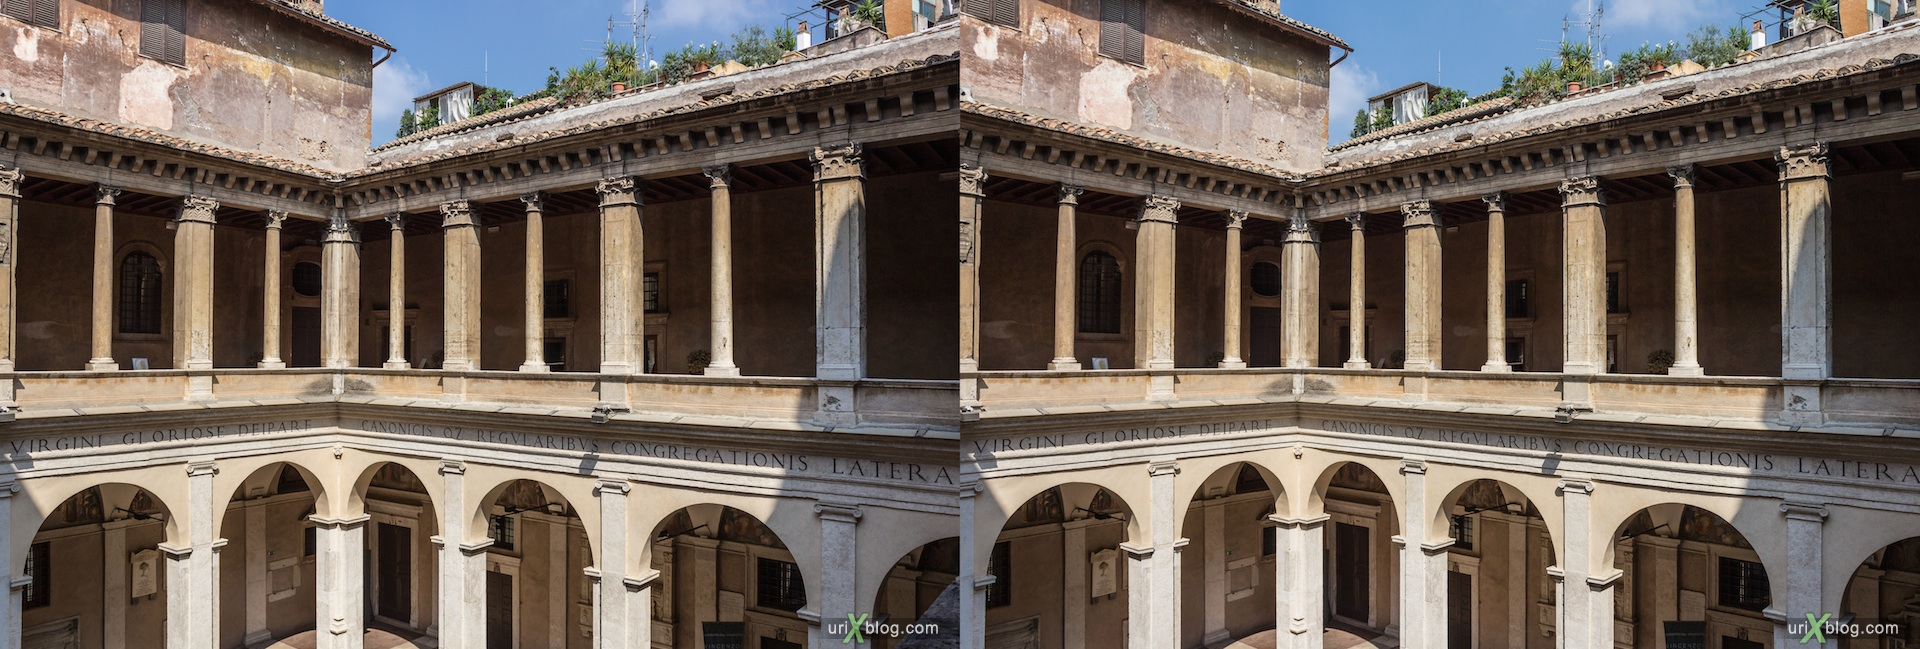 2012, church of Santa Maria della Pace, Rome, Italy, cathedral, monastery, Christianity, Catholicism, 3D, stereo pair, cross-eyed, crossview, cross view stereo pair